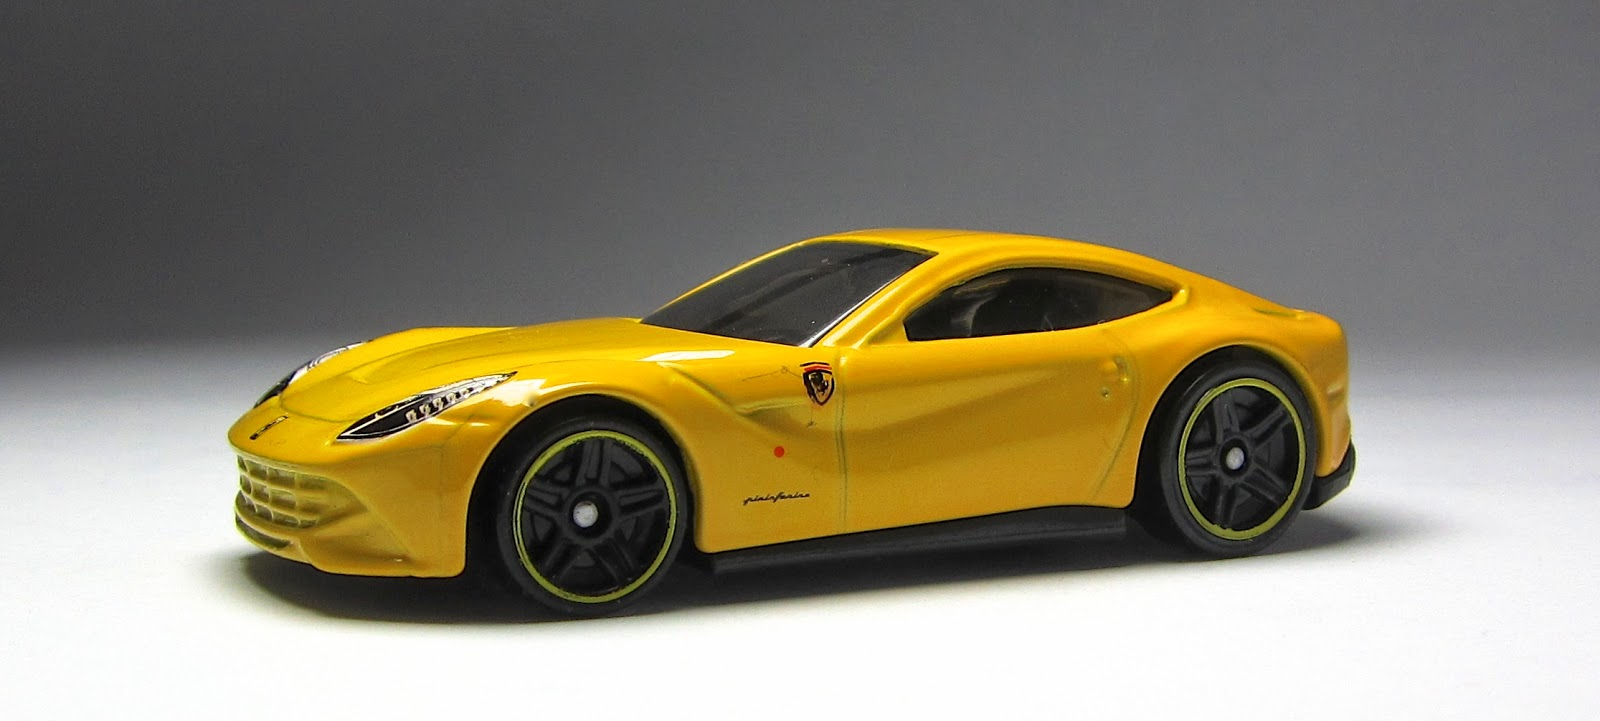 first look 2014 hot wheels ferrari f12 berlinetta in yellow - Ferrari 2014 Yellow